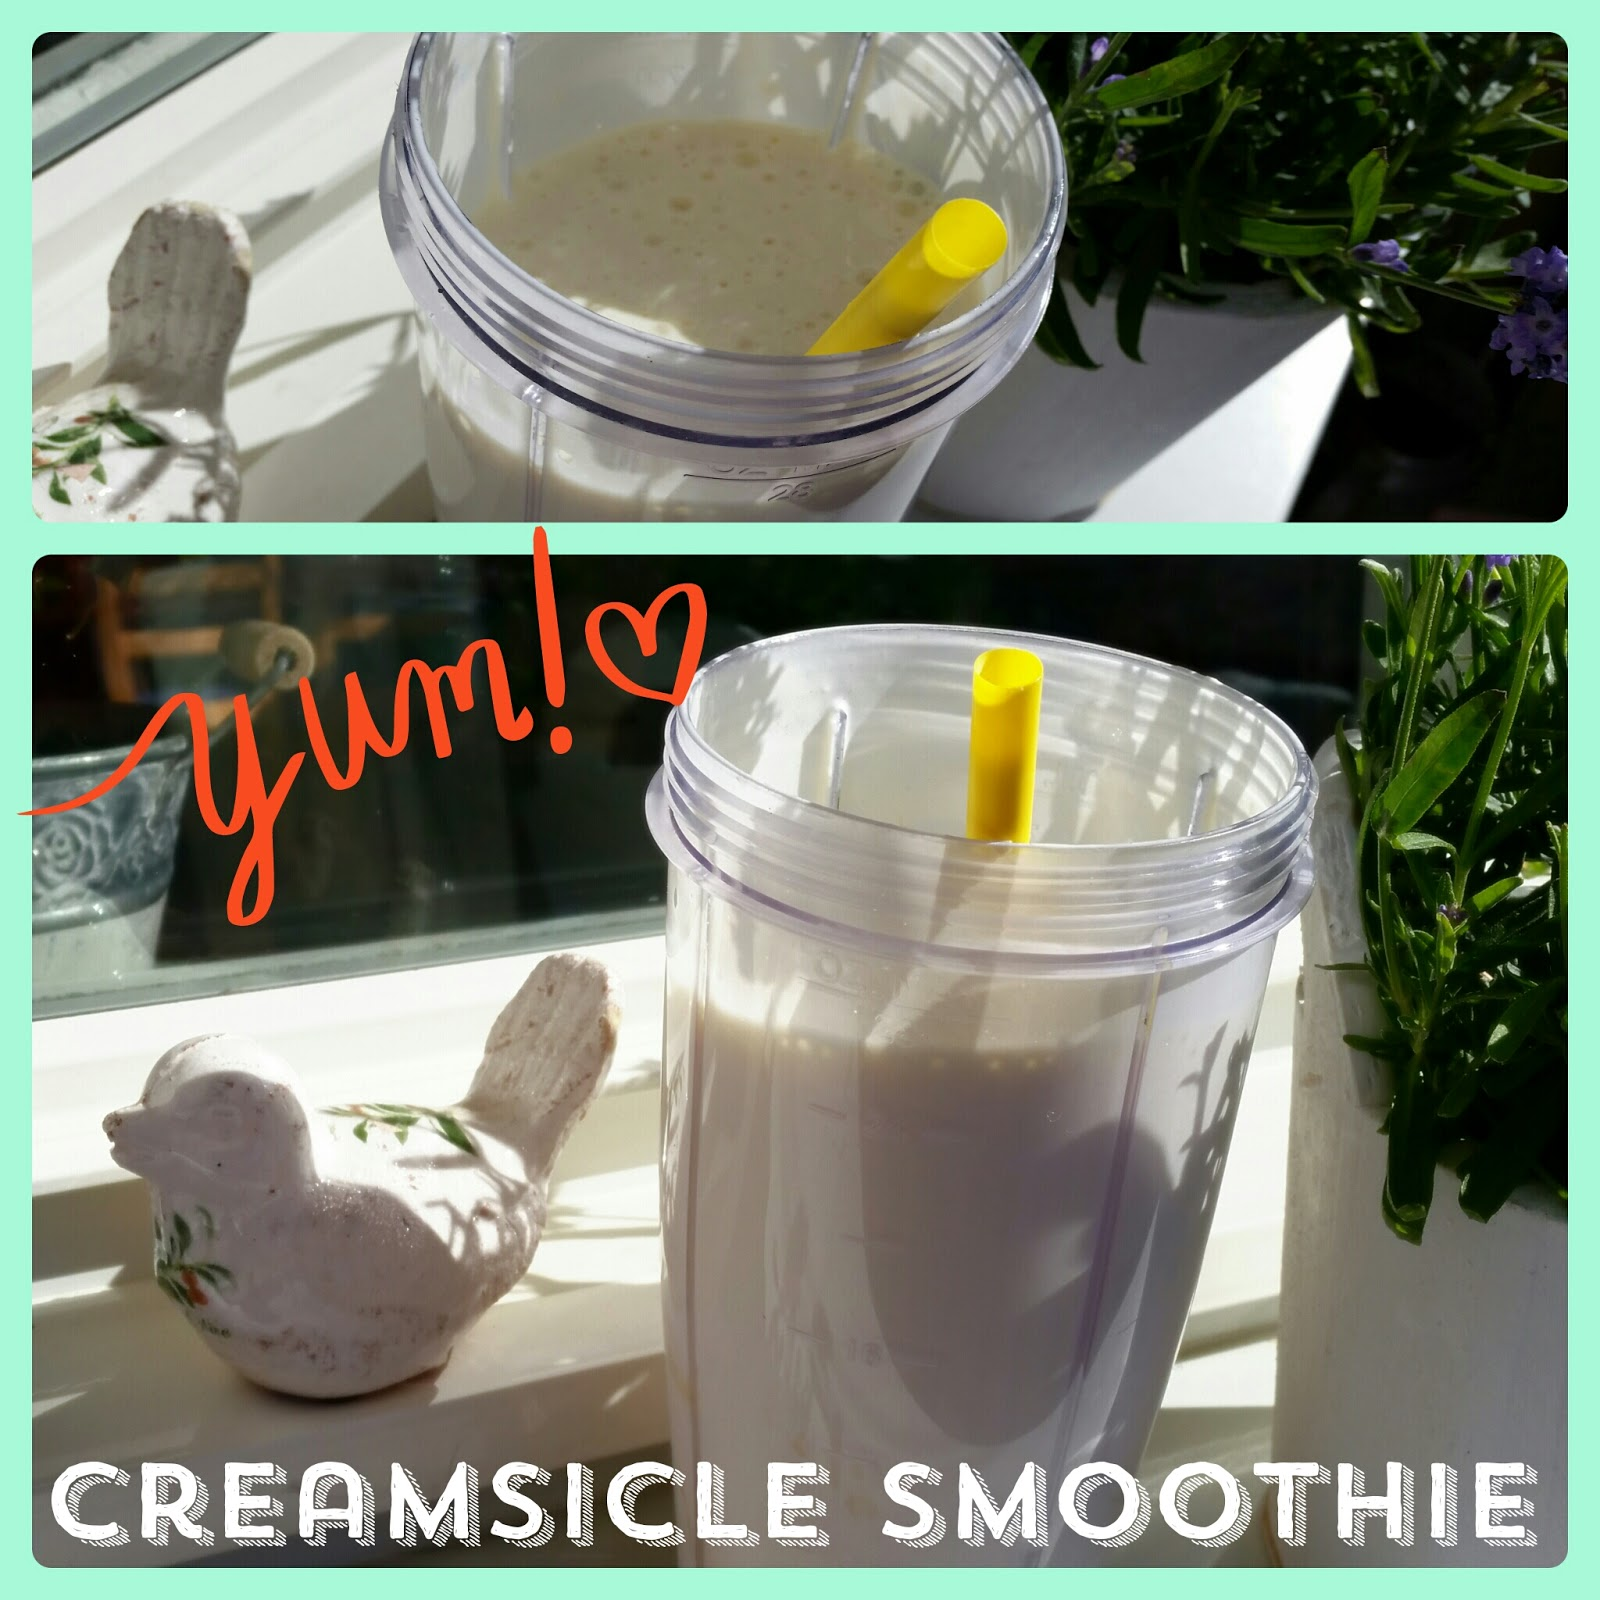 tone it up team, creamsicle smoothie, yum